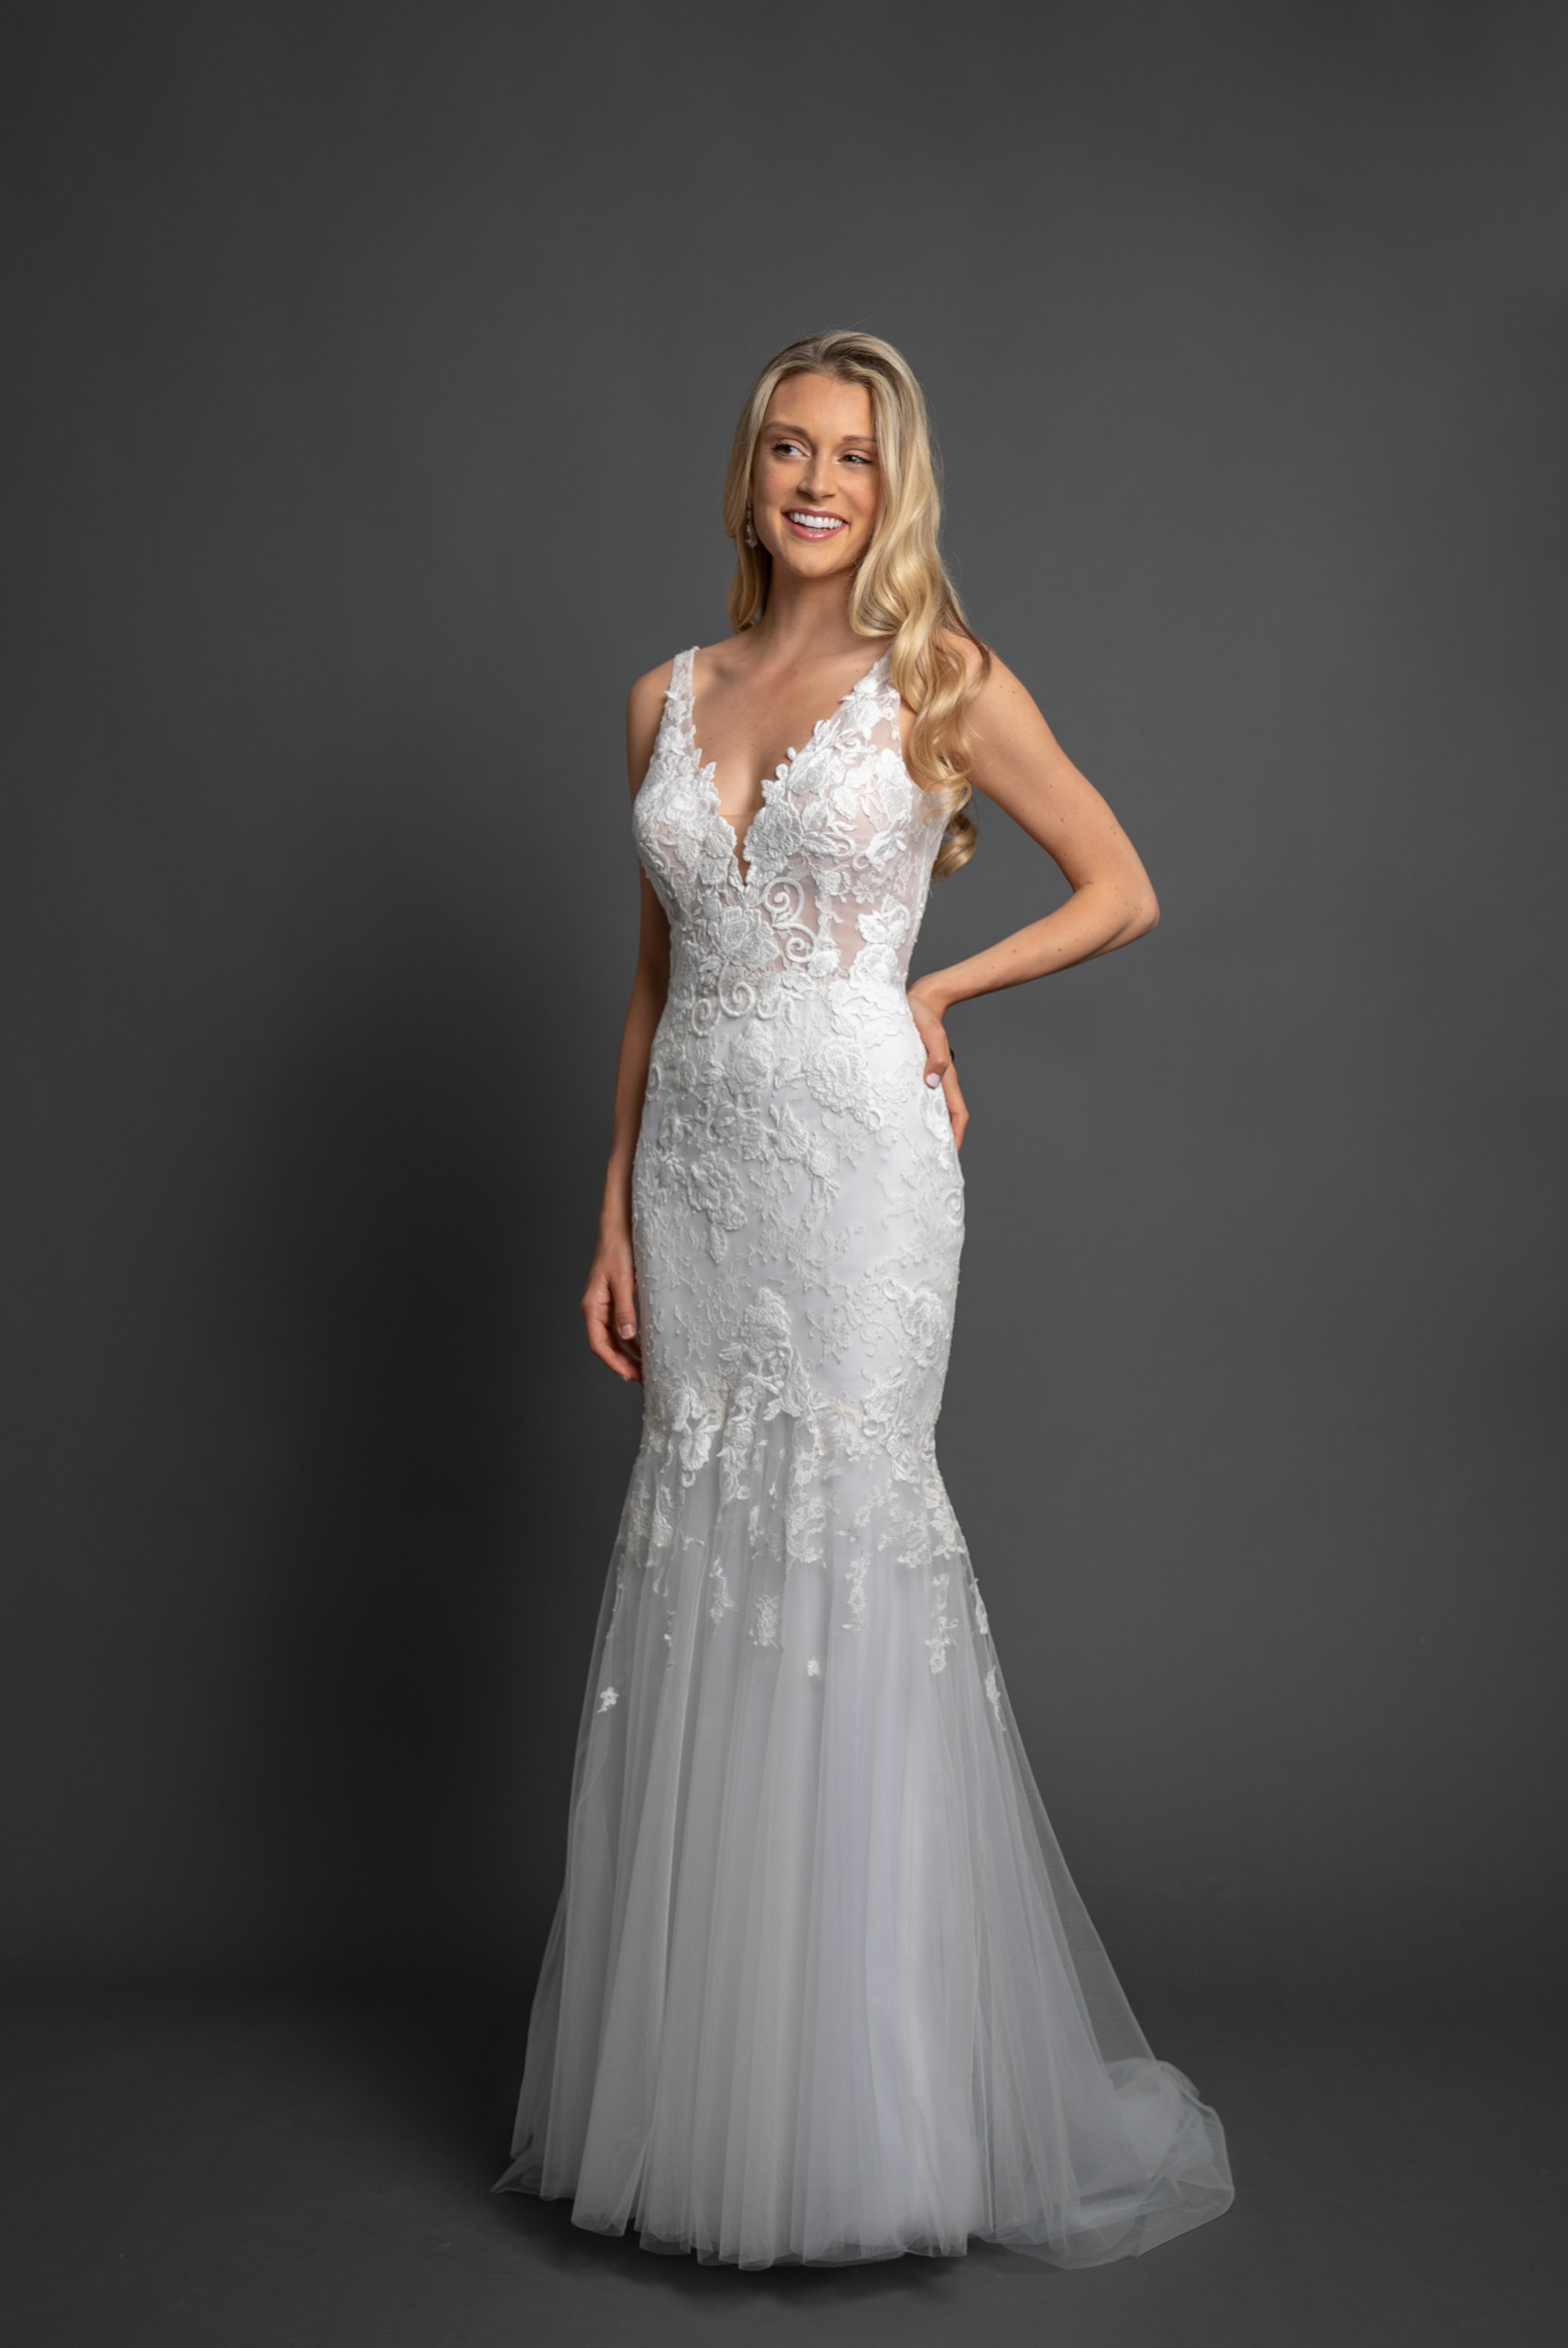 Sleeveless Fit to Flare Embroidered Wedding Dress by Modern Trousseau. Made in the USA by Modern Trousseau.